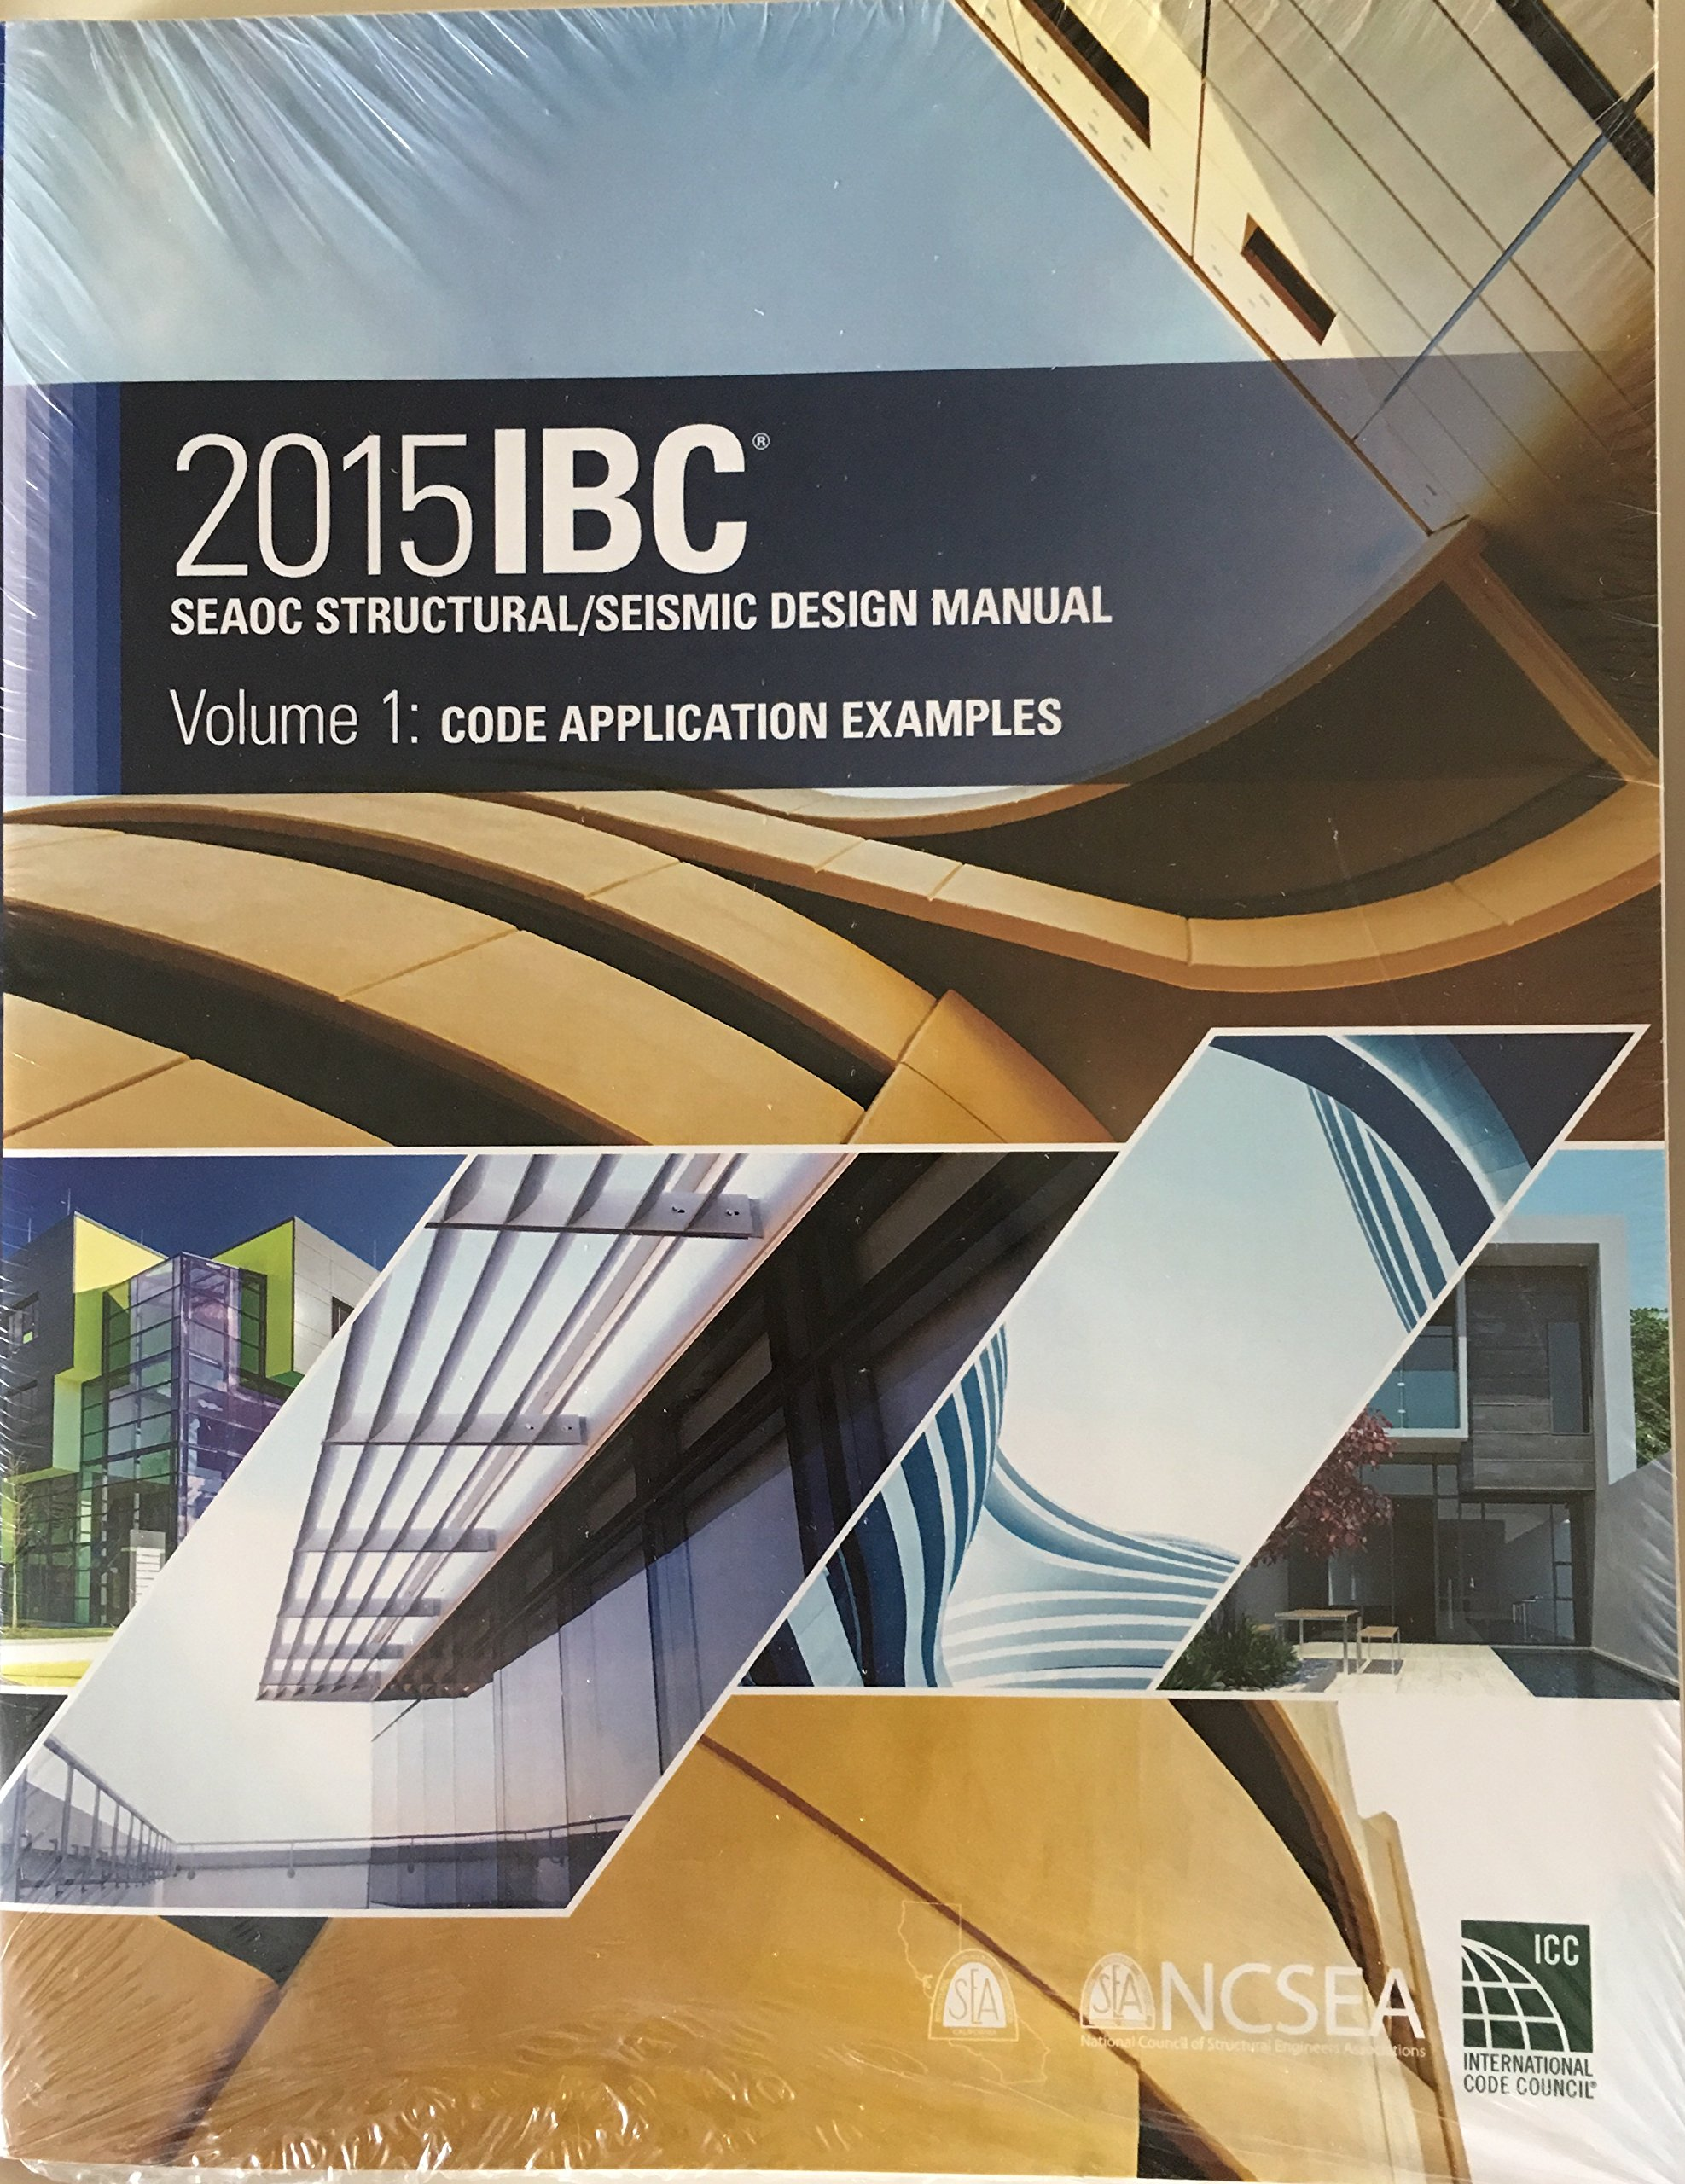 2015 IBC SEAOC Structural/Seismic Design Manual Volume 1: Code Application  Examples: 9781609836498: Amazon.com: Books